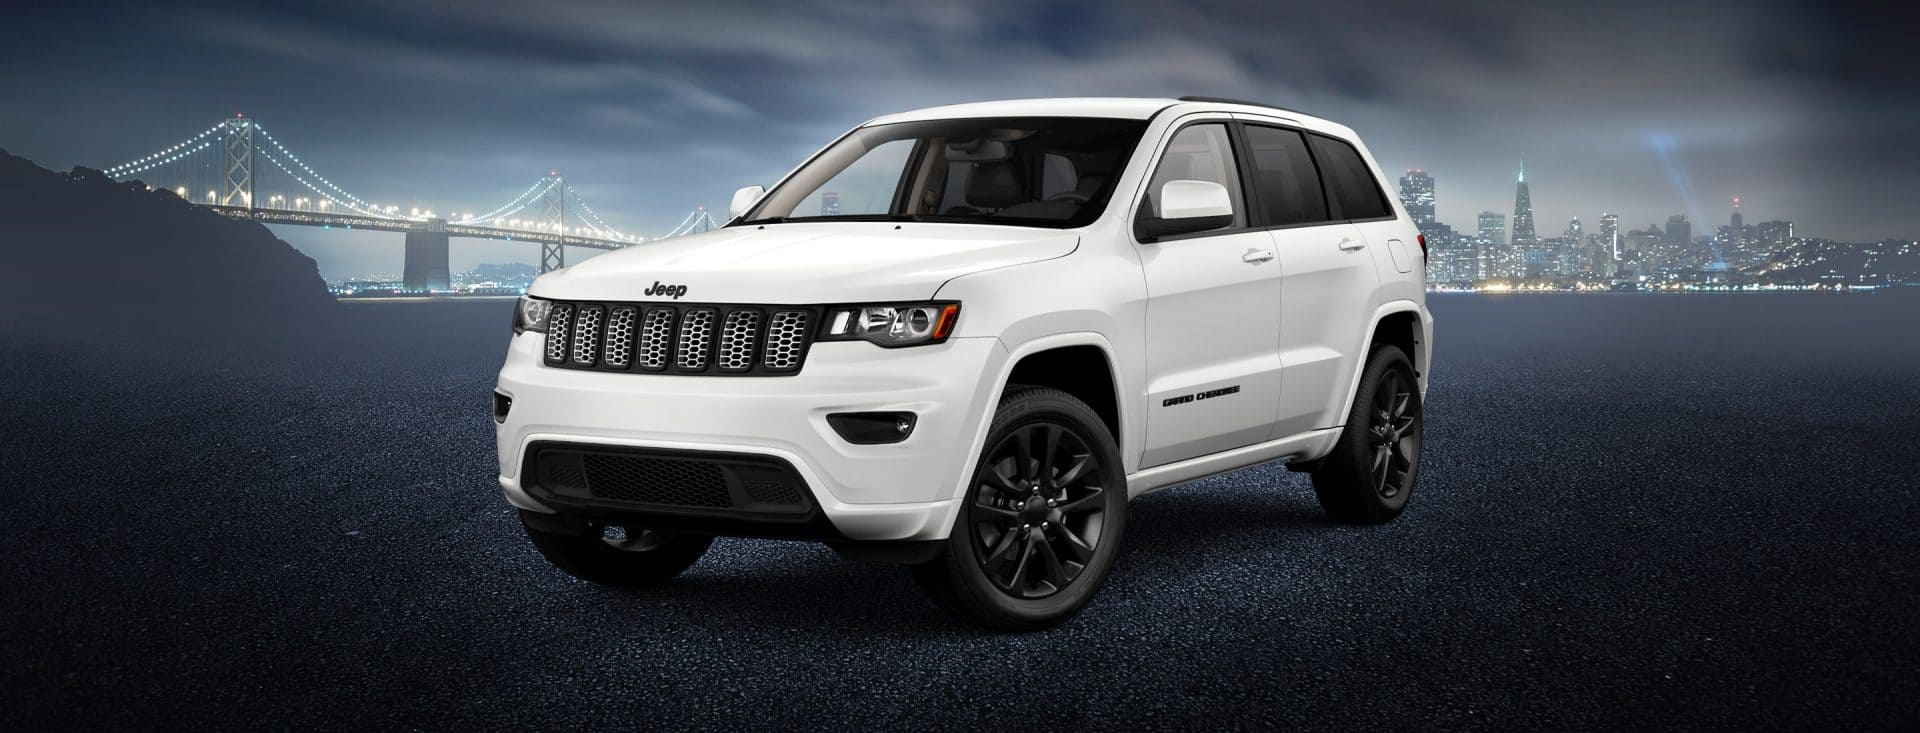 2018 jeep grand cherokee altitude limited edition suv. Black Bedroom Furniture Sets. Home Design Ideas